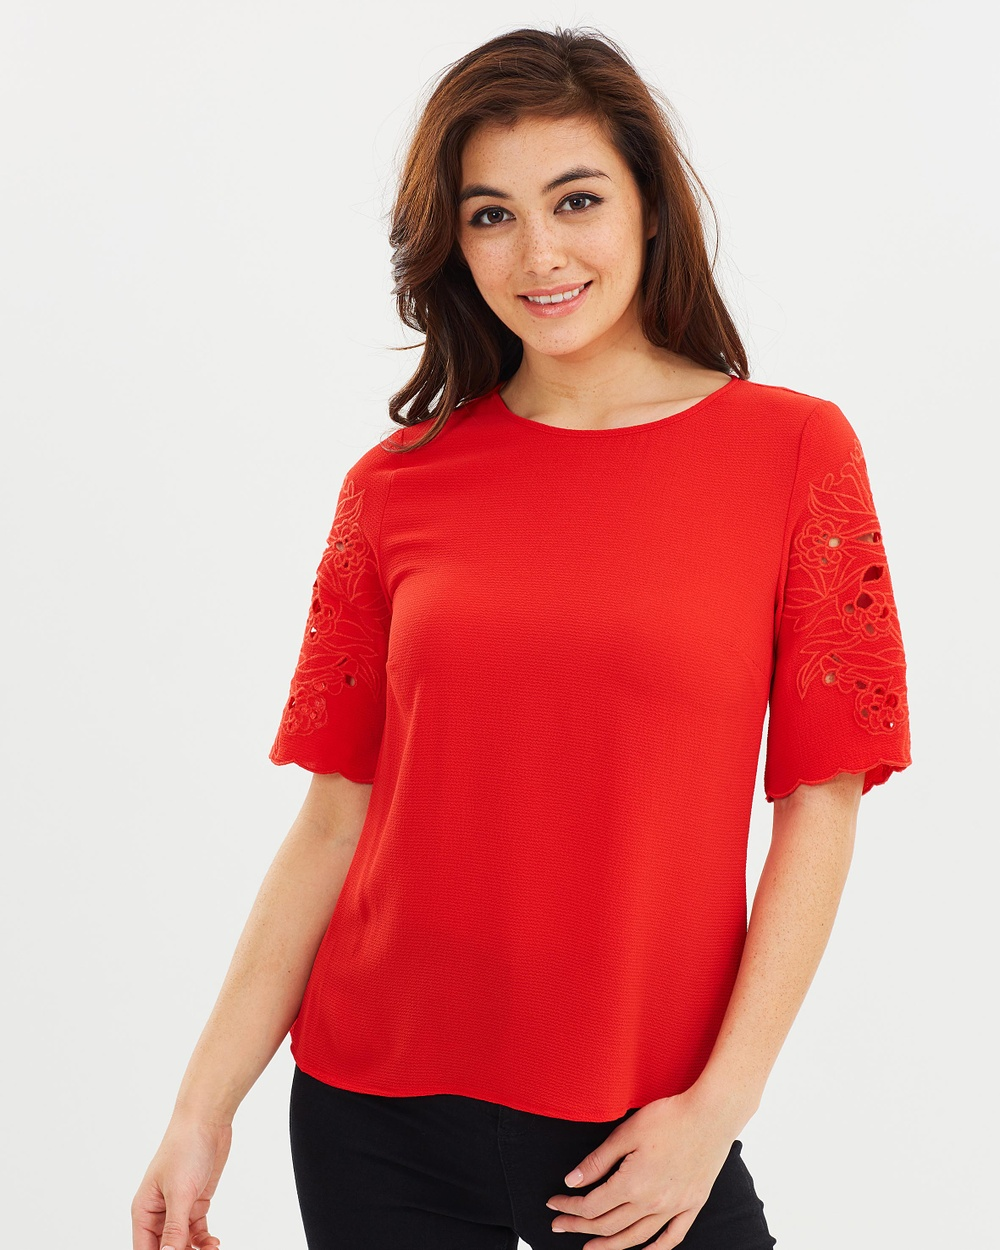 Dorothy Perkins Cutwork Sleeve Tee Tops Red Cutwork Sleeve Tee